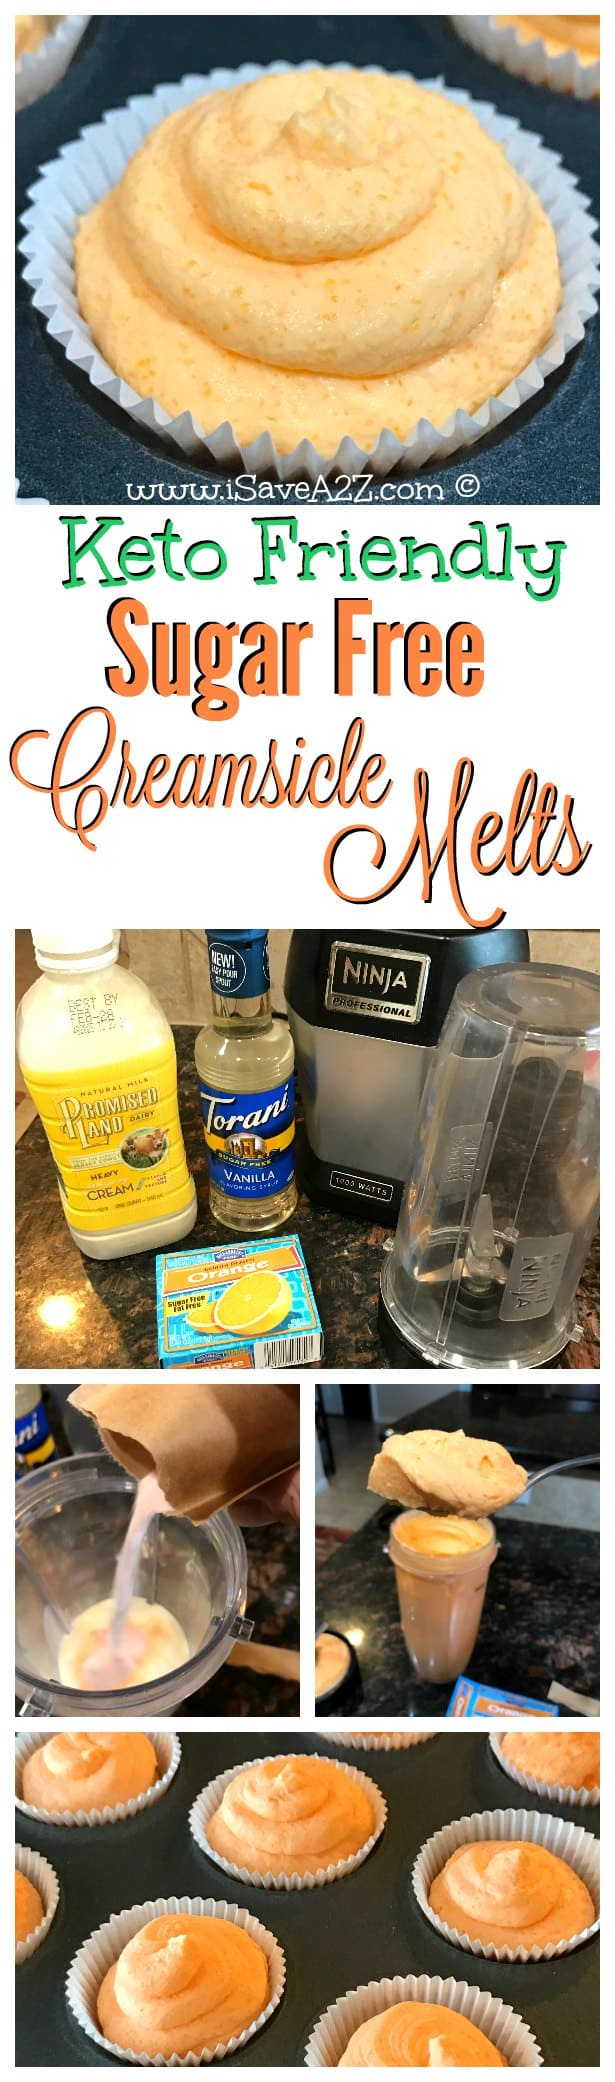 Keto Friendly Sugar Free Creamsicle Melts Treat idea